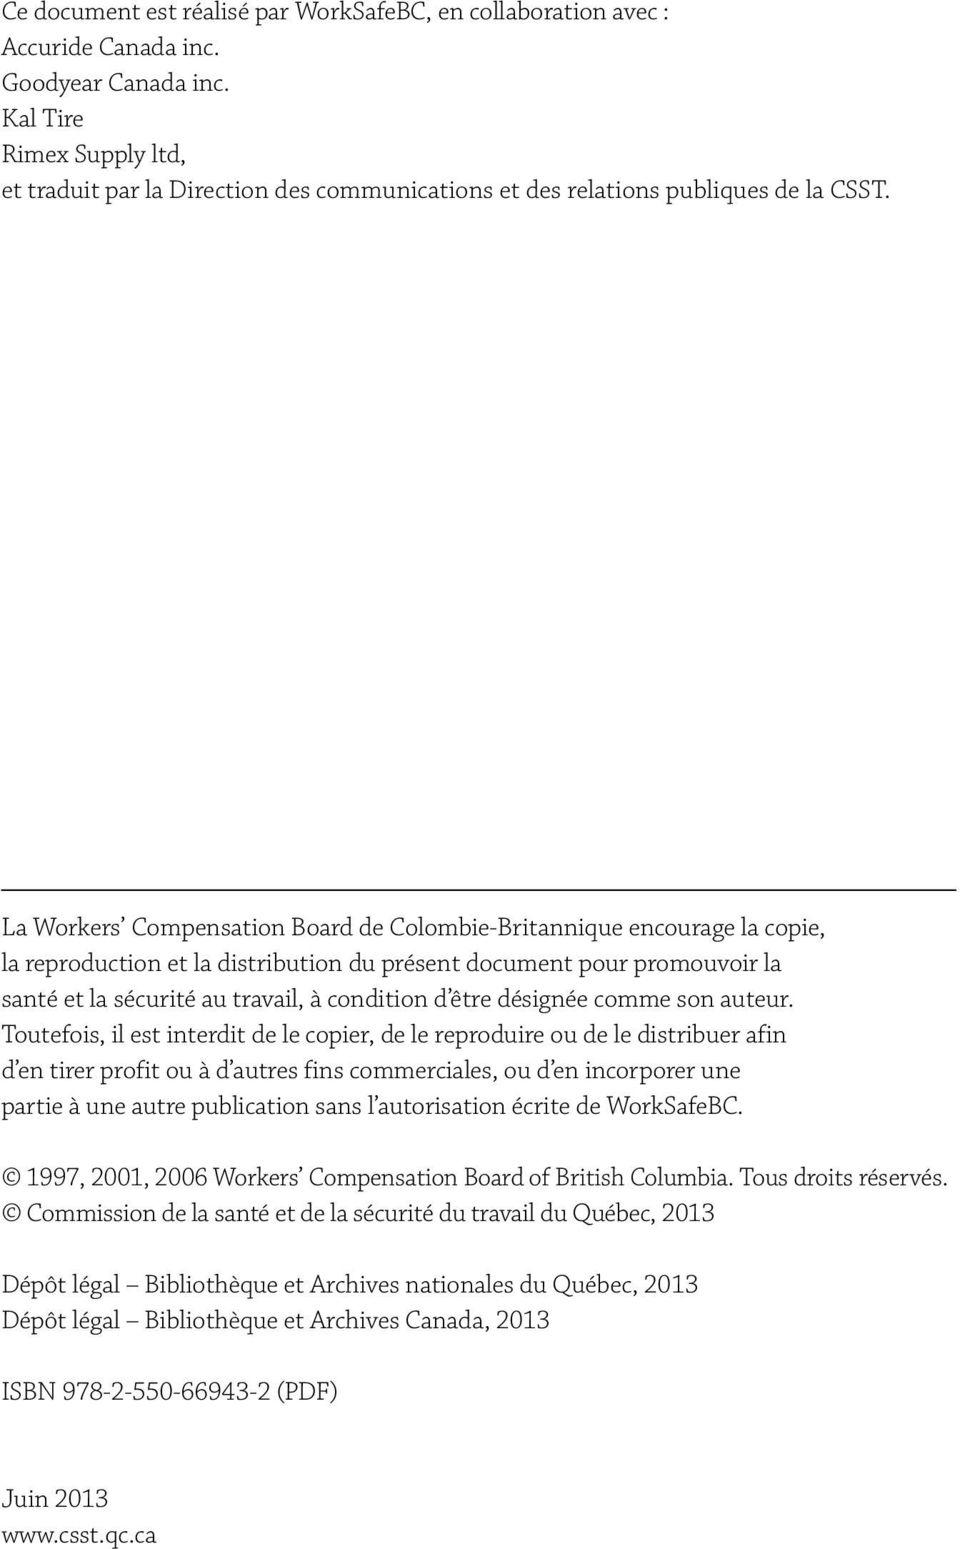 La Workers Compensation Board de Colombie-Britannique encourage la copie, la reproduction et la distribution du présent document pour promouvoir la santé et la sécurité au travail, à condition d être